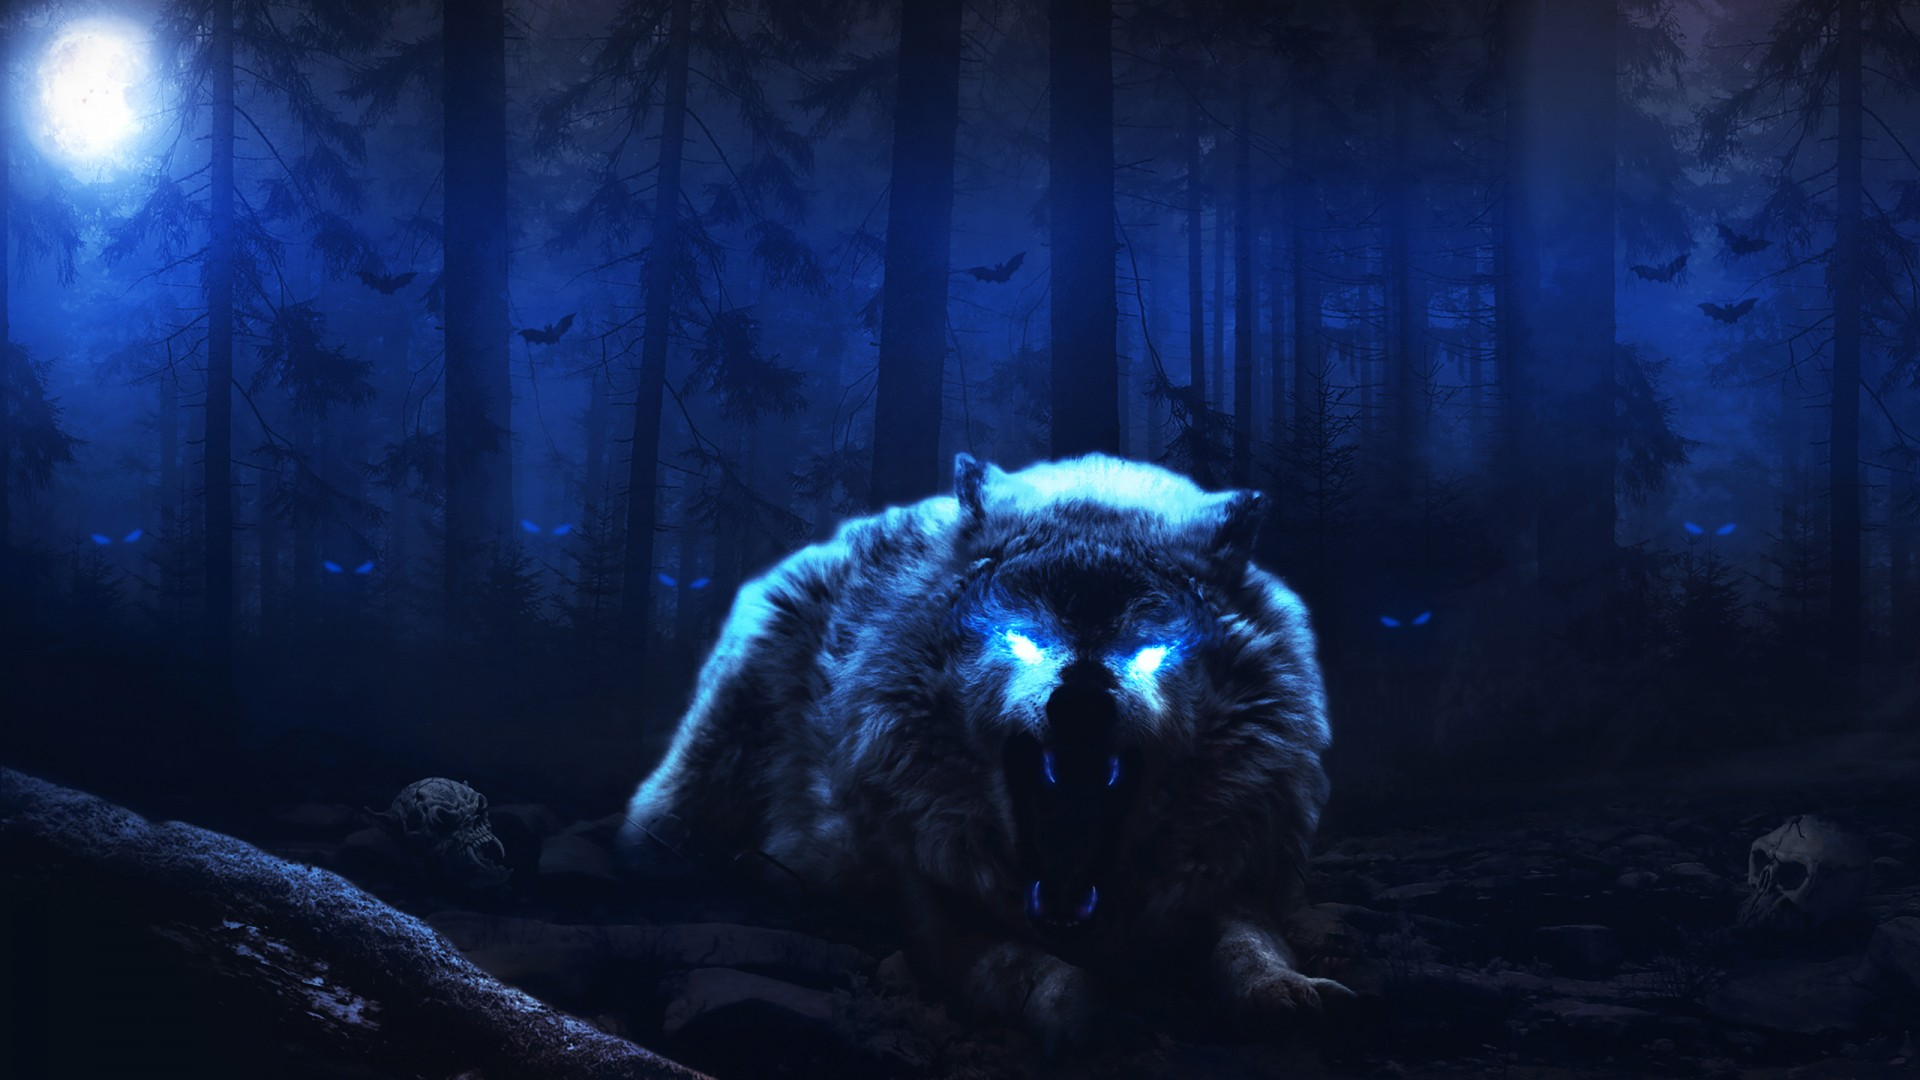 Love Wallpaper Hd 3d Scary Wolf Wallpapers Hd Wallpapers Id 27589